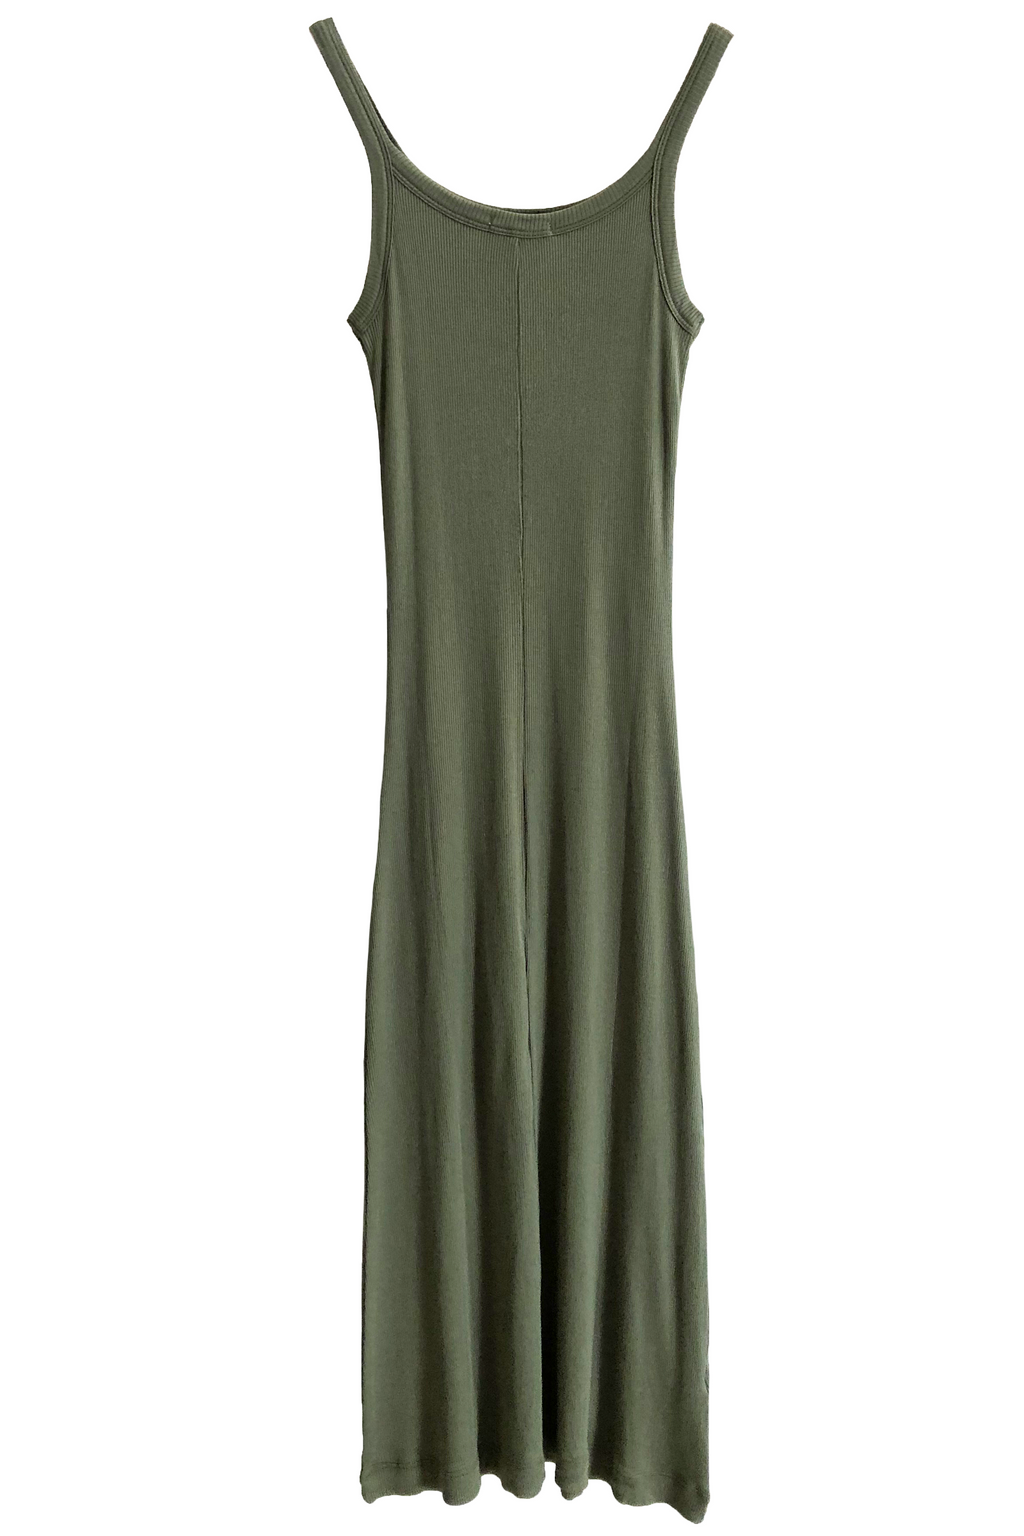 Skin Radika Chemise Dress in Olive Branch